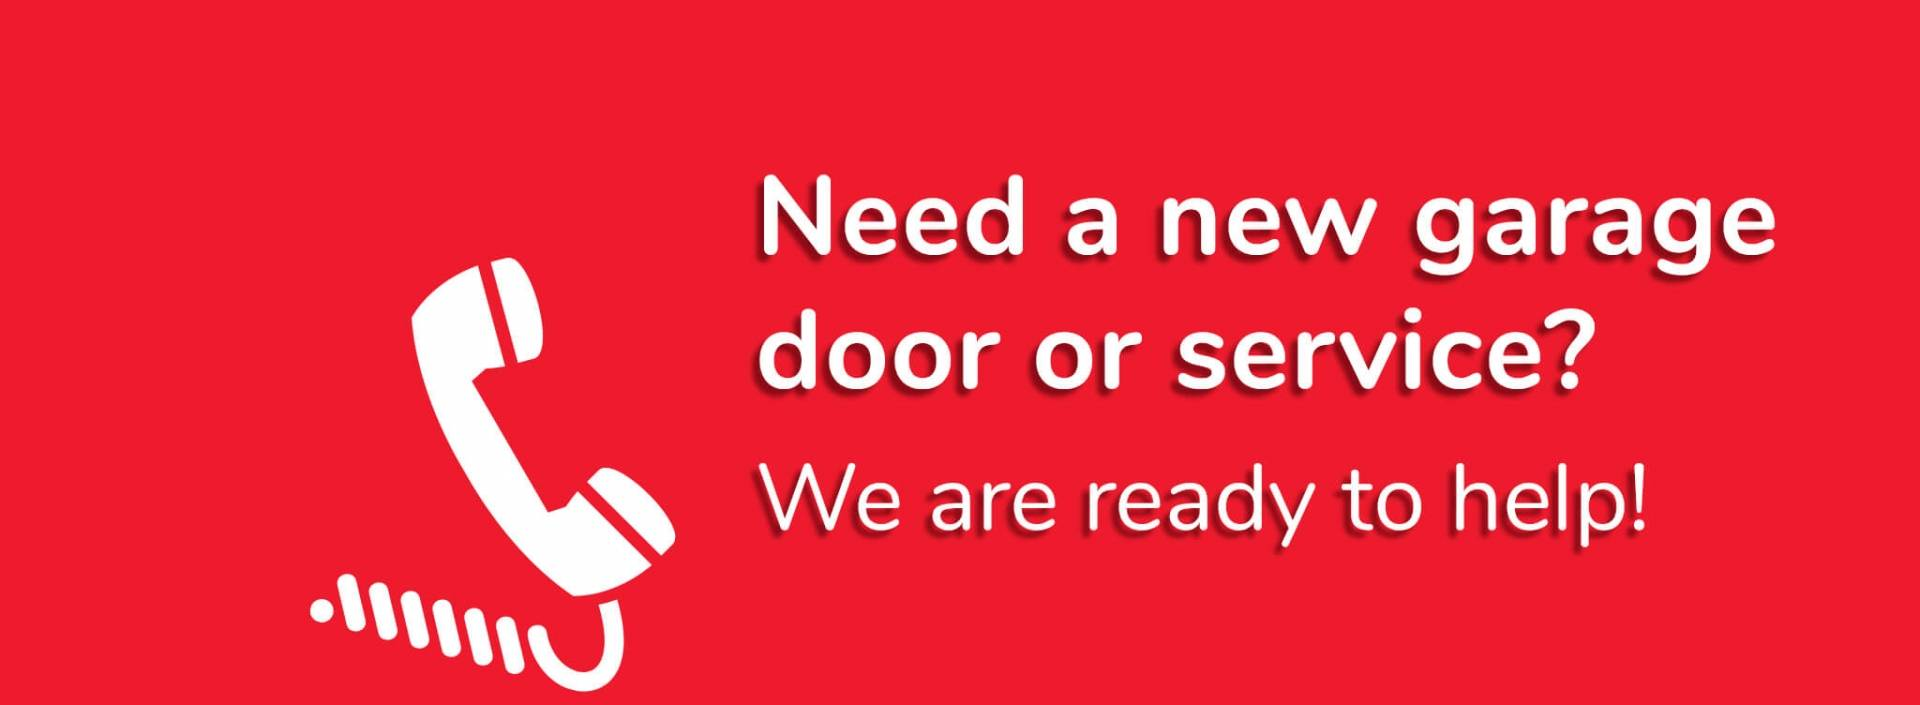 Need a new garage door or service? We are ready to help!